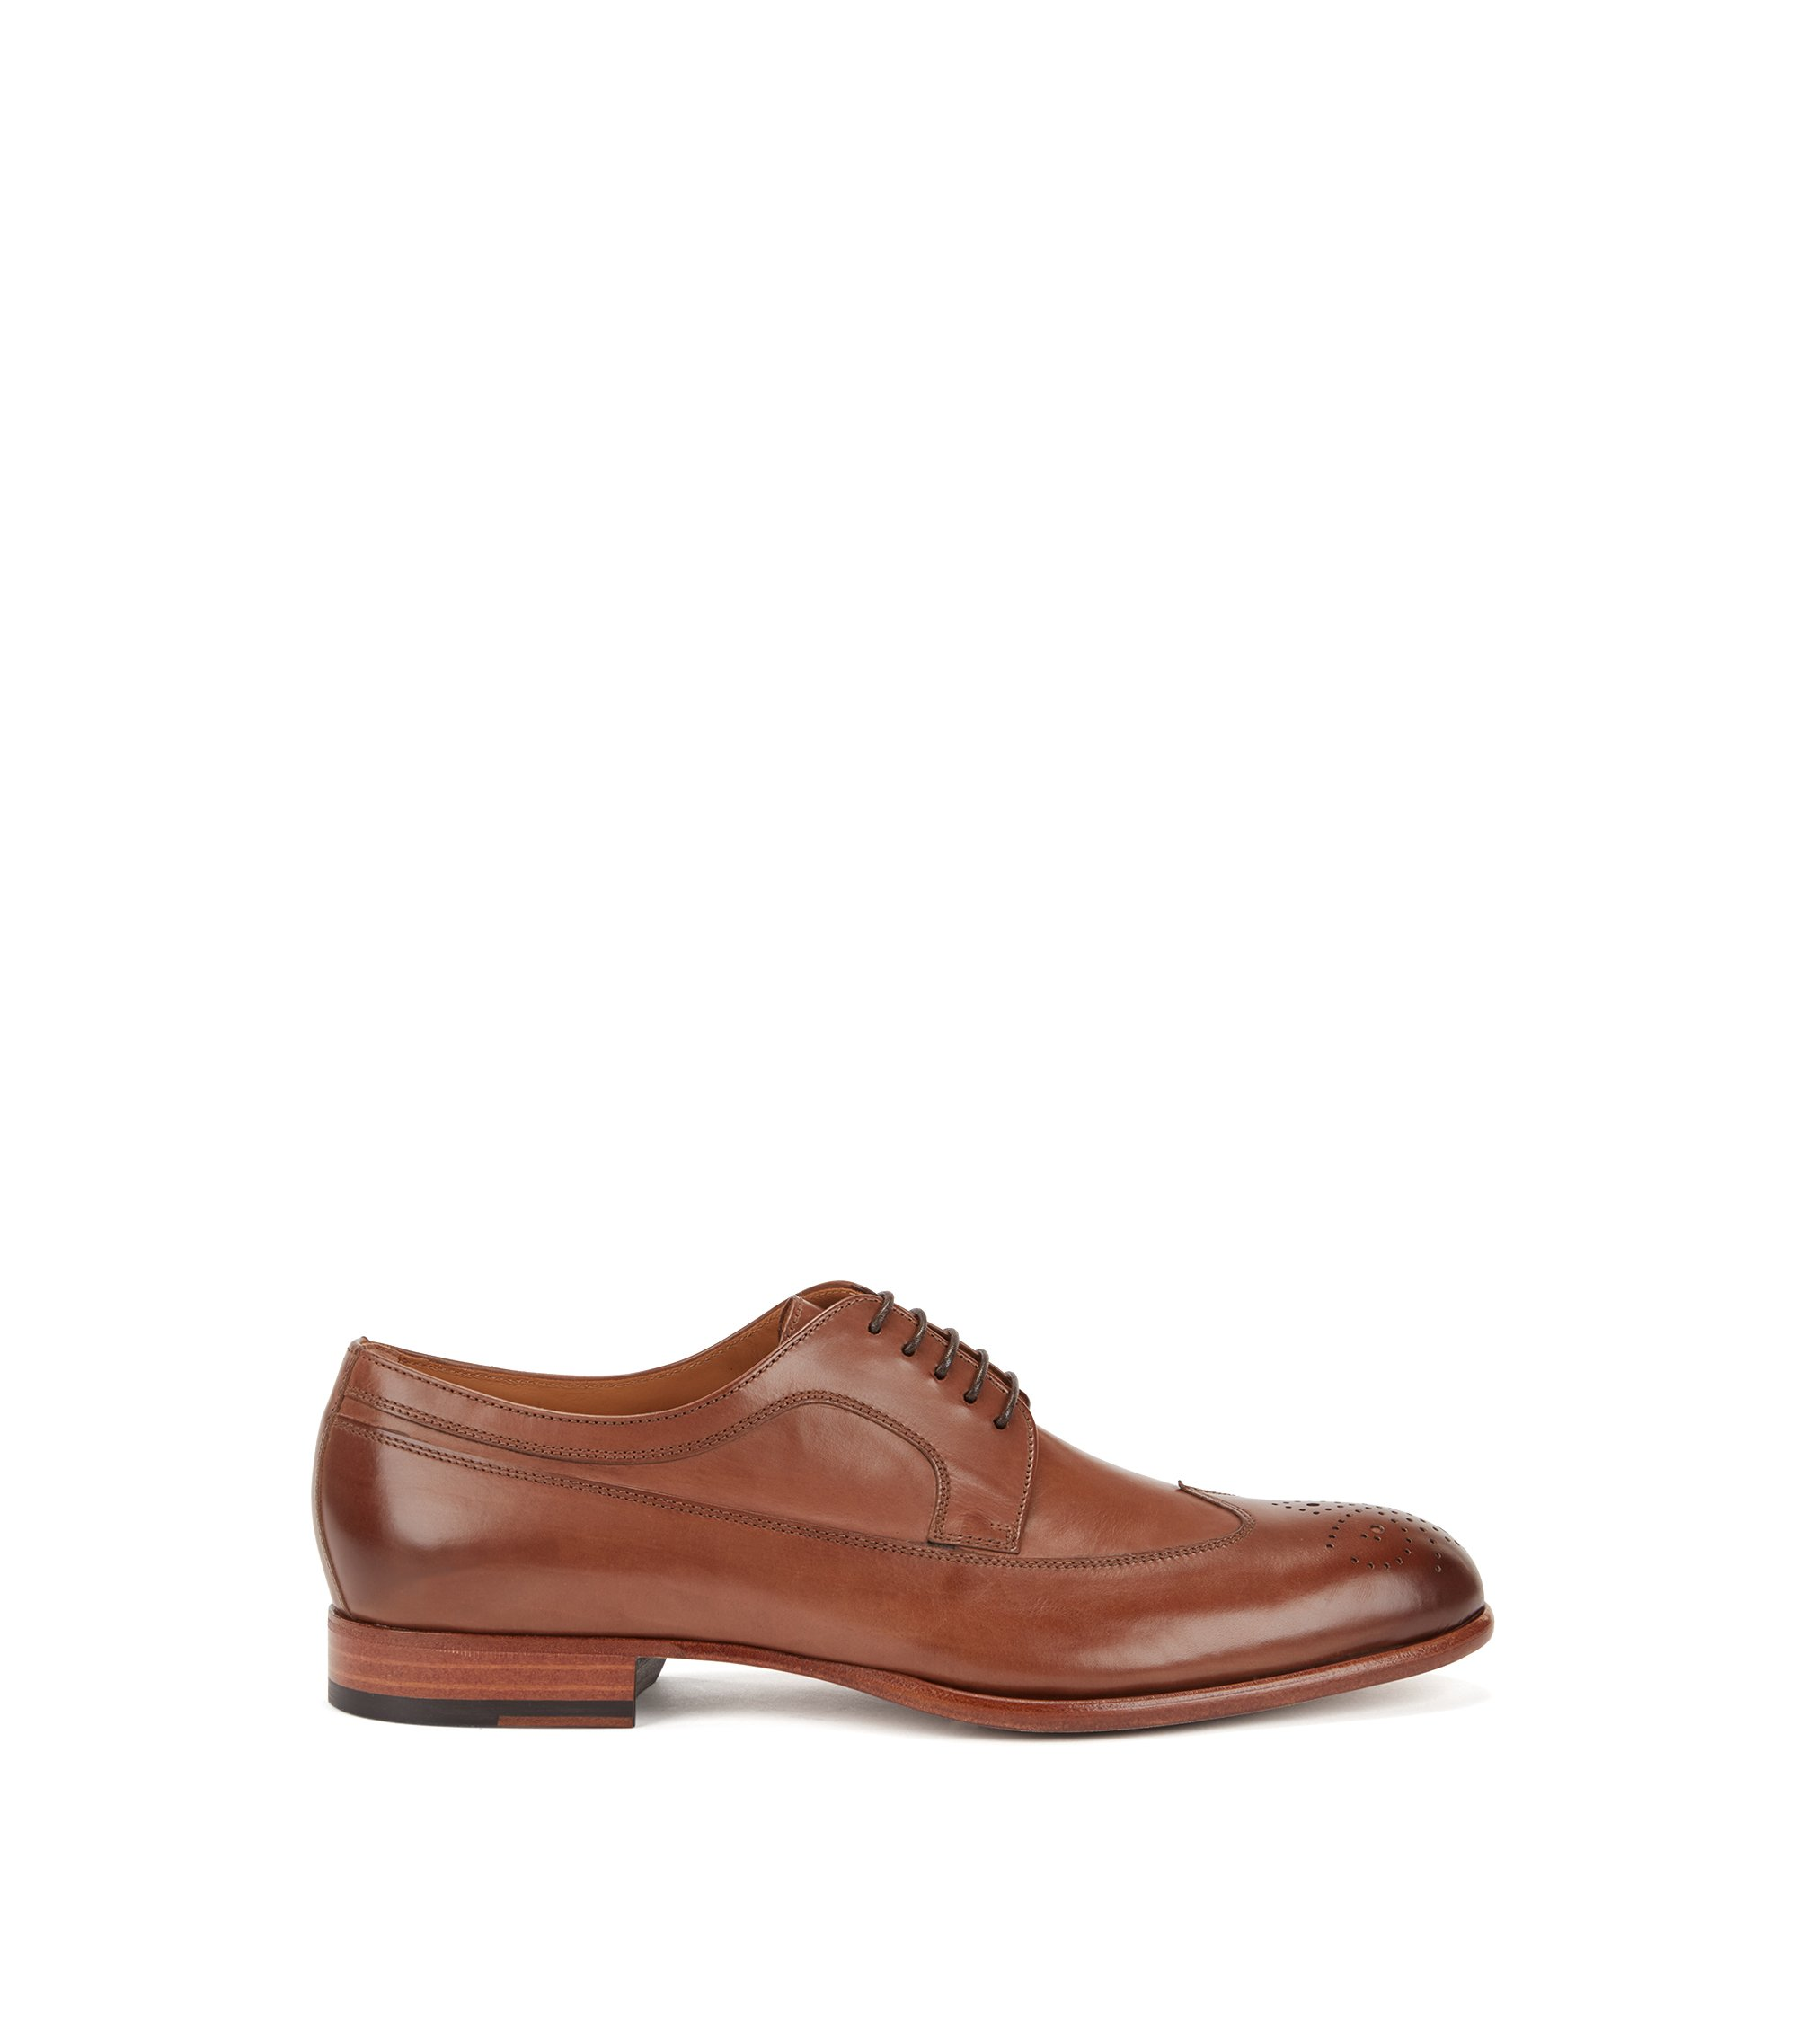 Leather Derby shoes with brogueing, Khaki